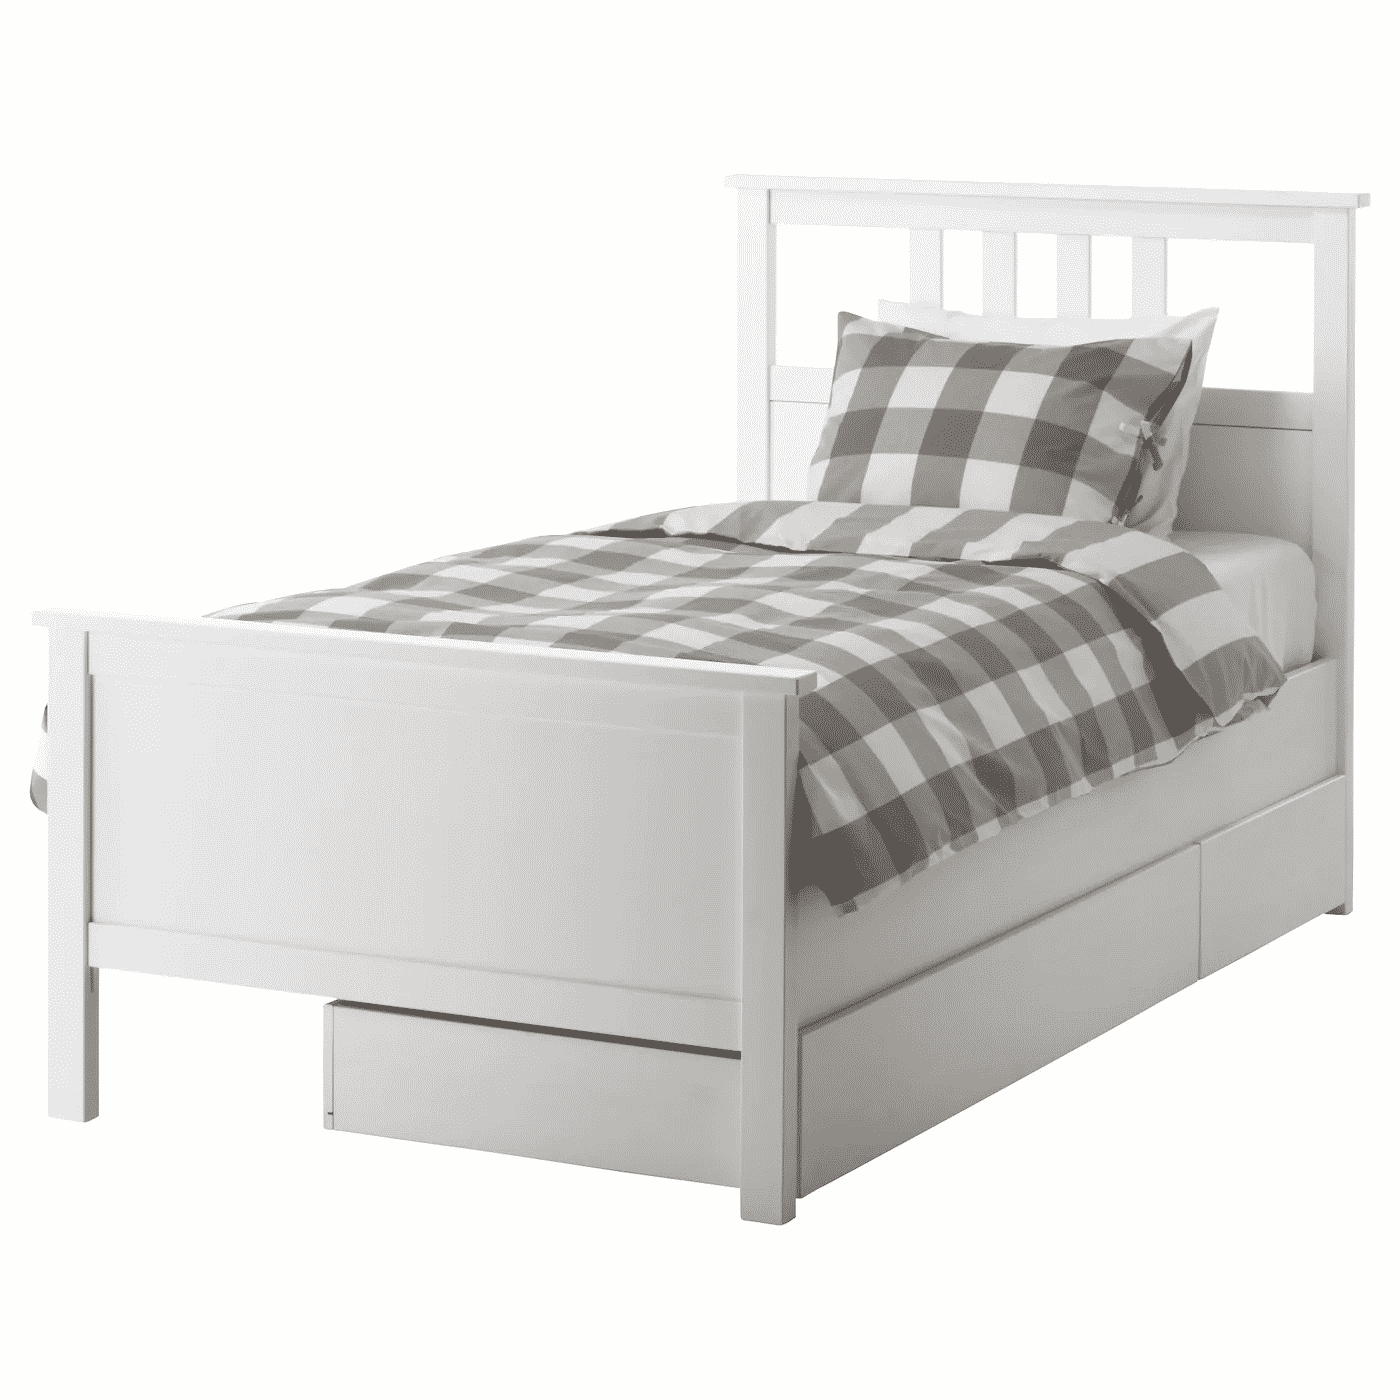 Hemnes Bed Frame with 2 Storage Boxes